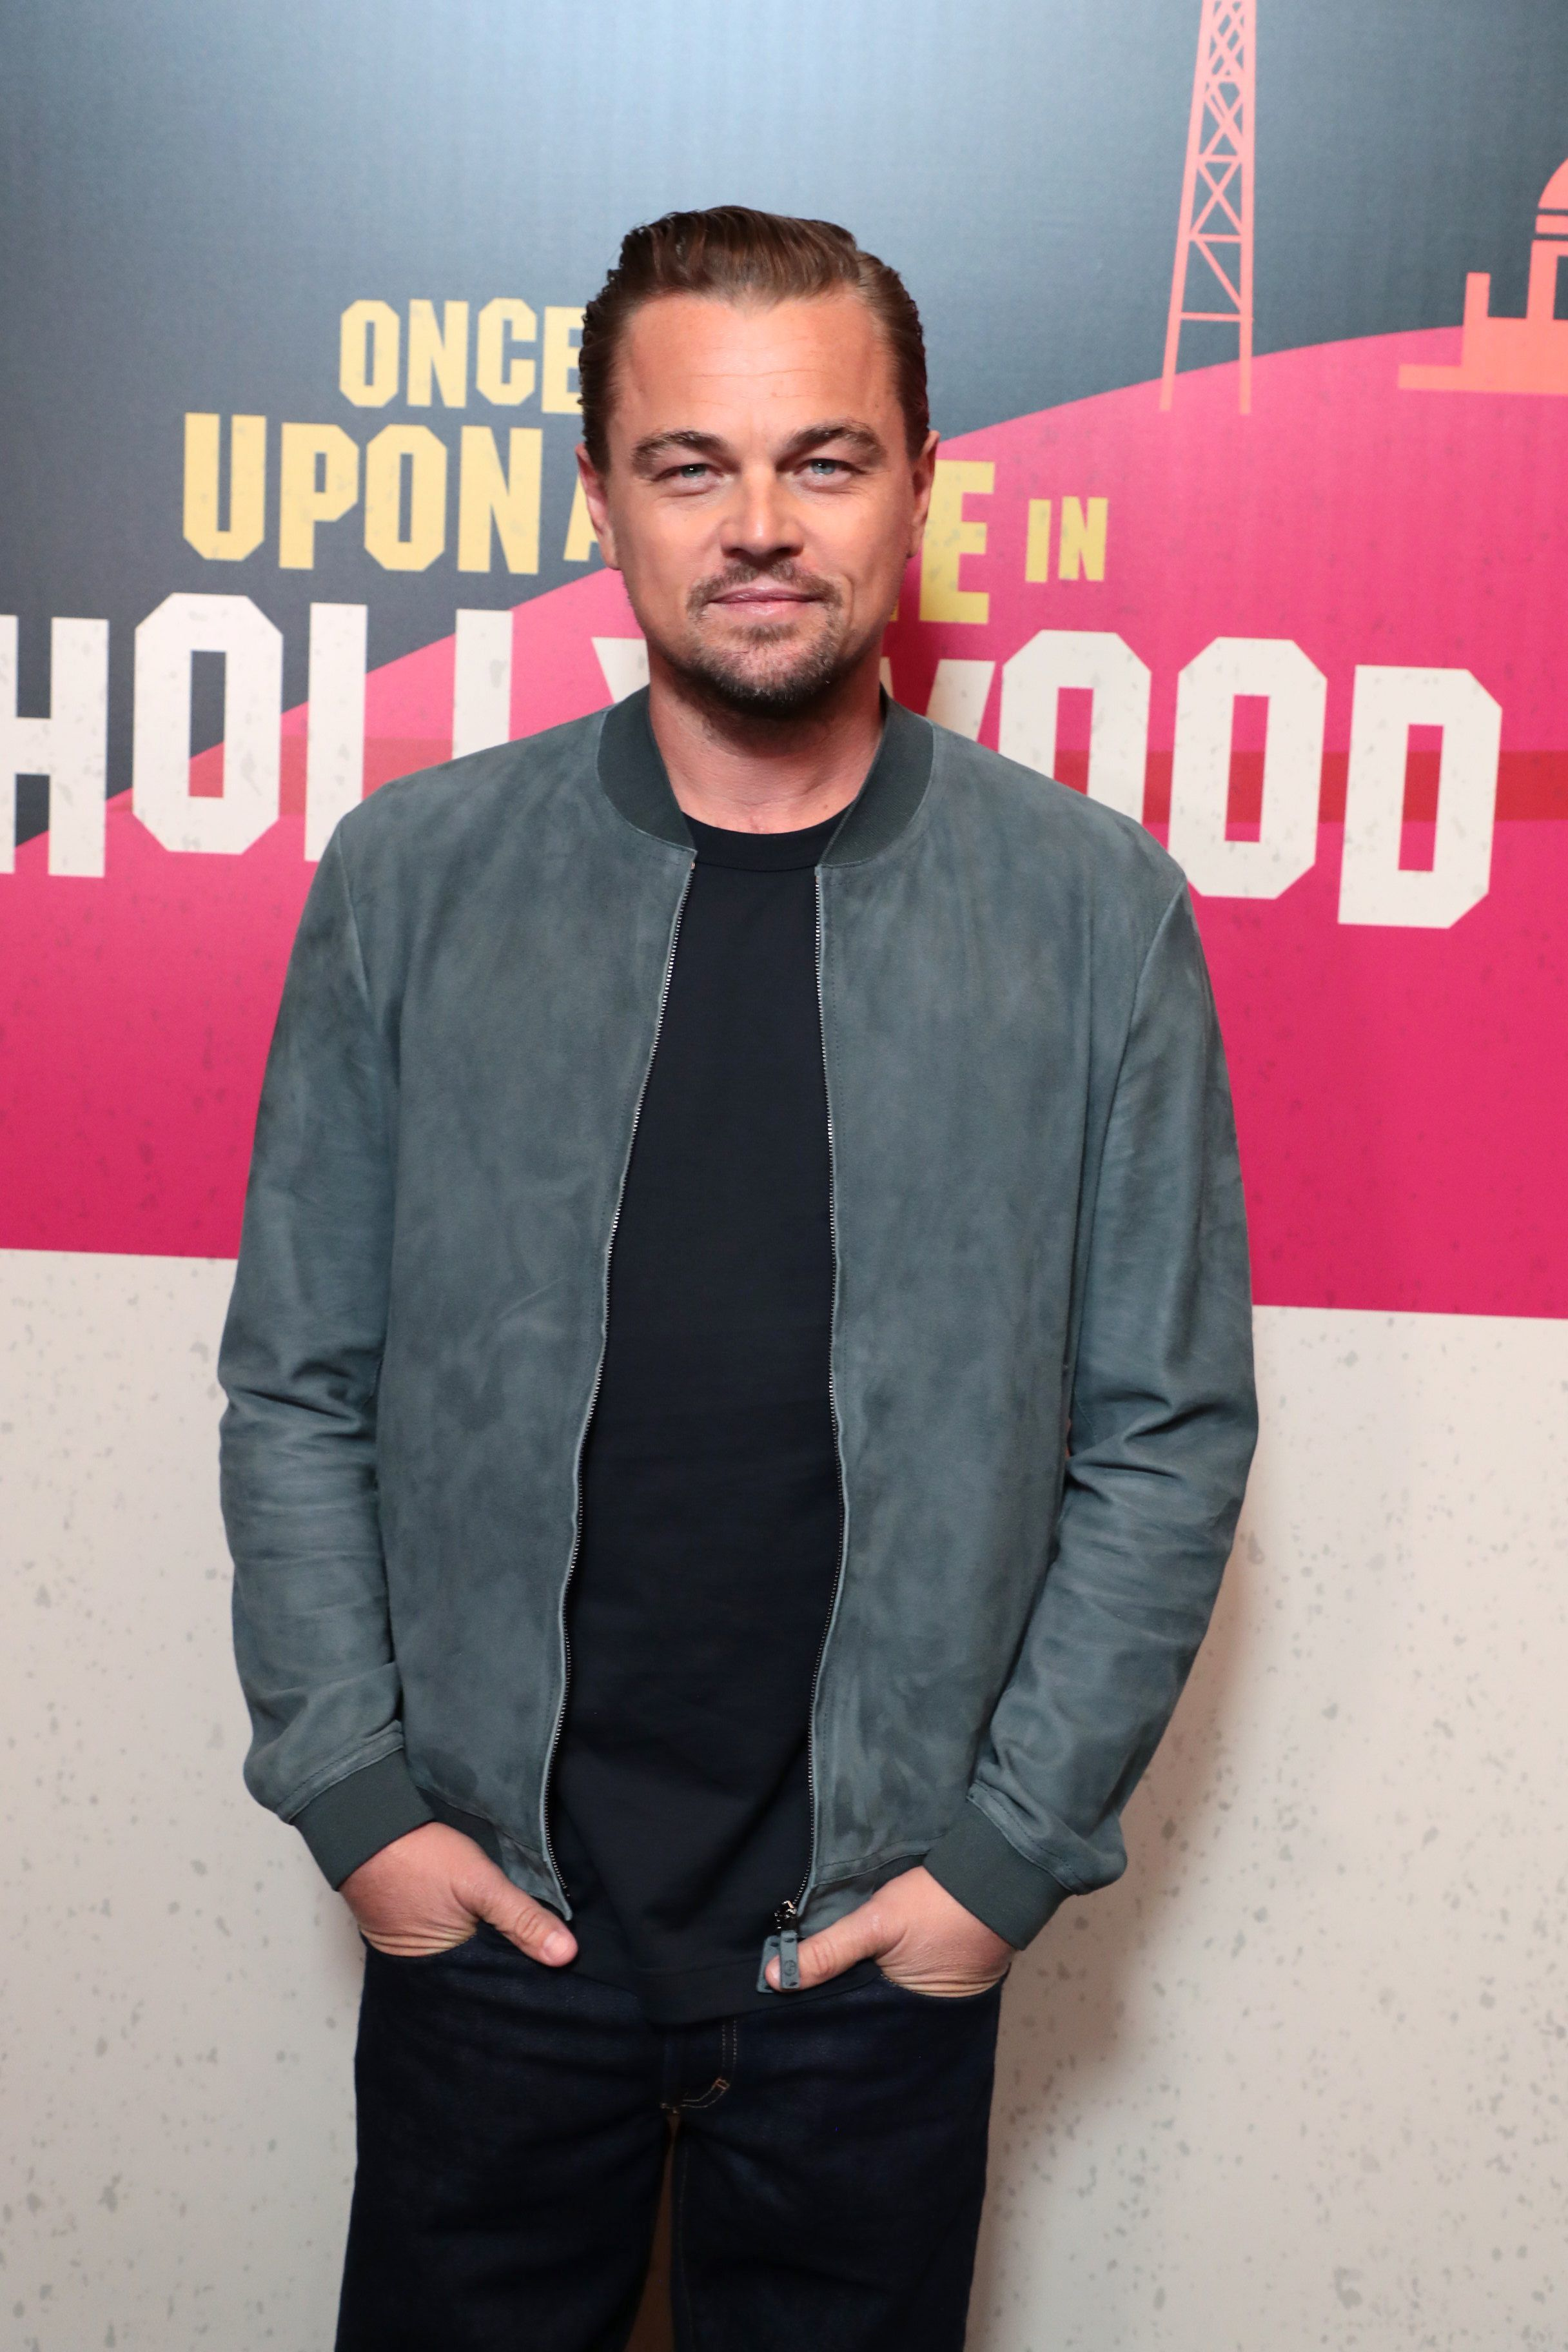 """Leonardo DiCaprio attends the CinemaCon Photo Call for Columbia Pictures' """"Once Upon a Time in Hollywood"""" in Las Vegas on April 23, 2018."""